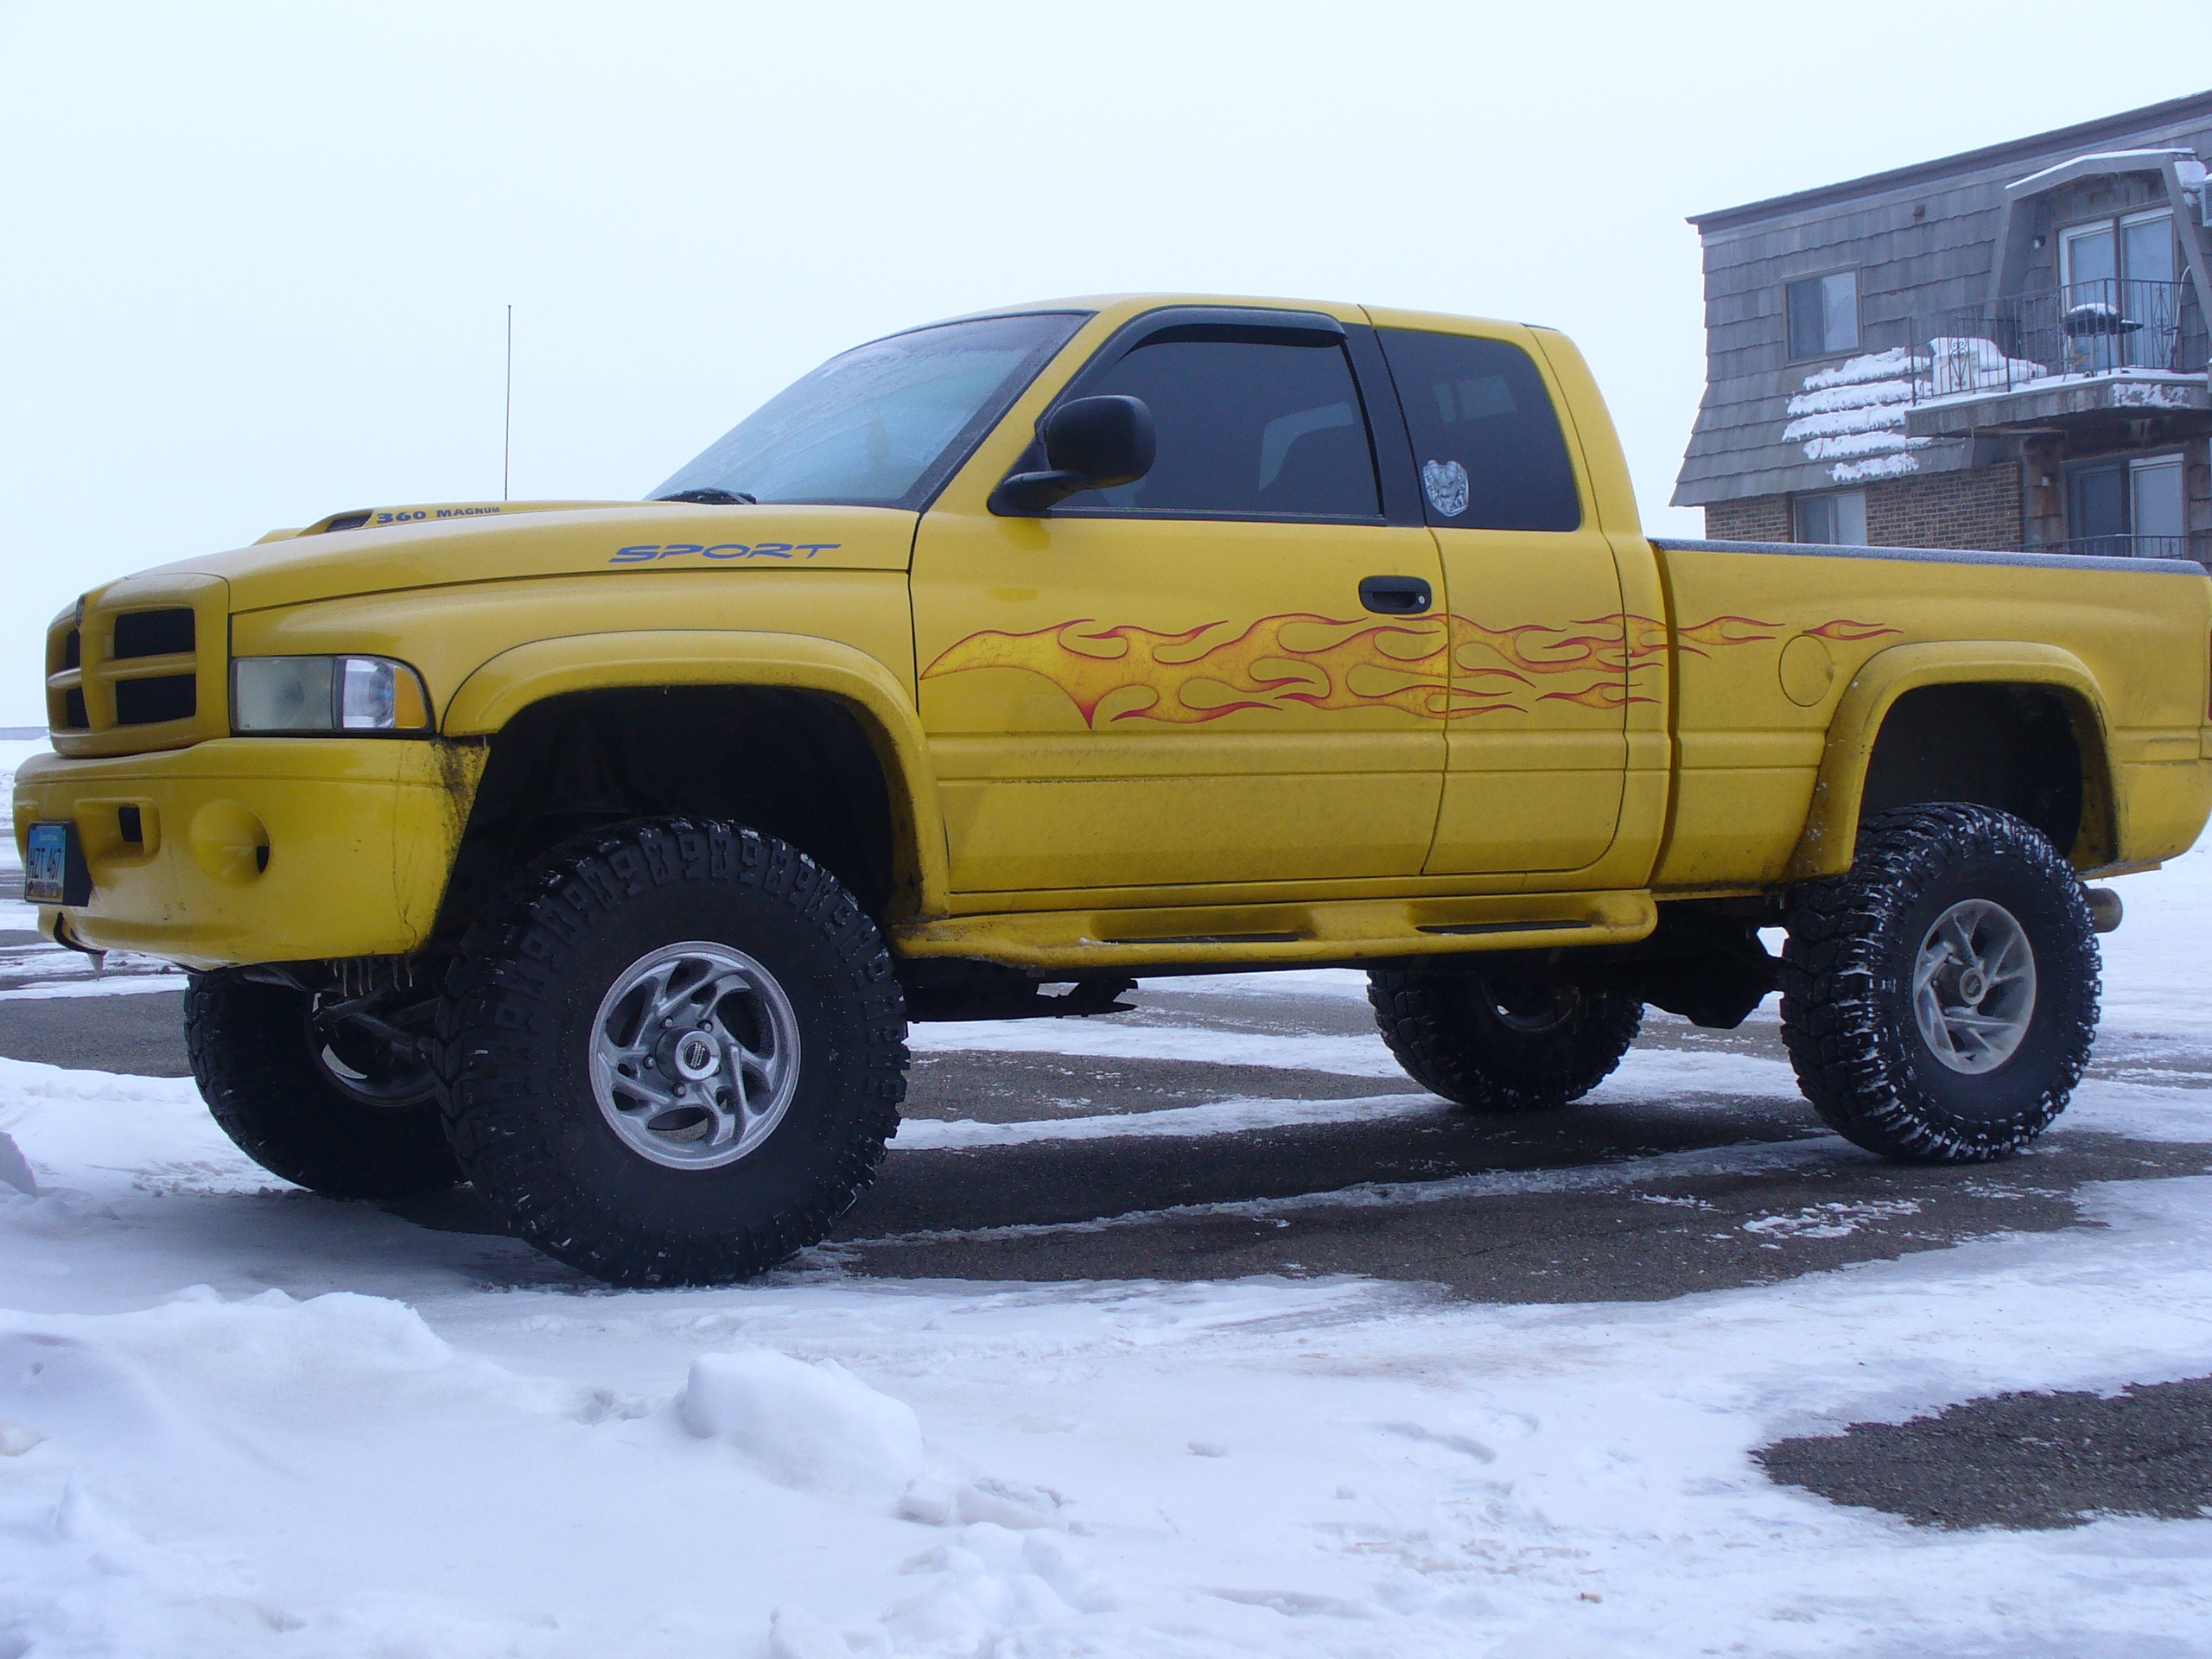 icemannd 2001 dodge ram 1500 regular cab specs photos modification info at cardomain. Black Bedroom Furniture Sets. Home Design Ideas